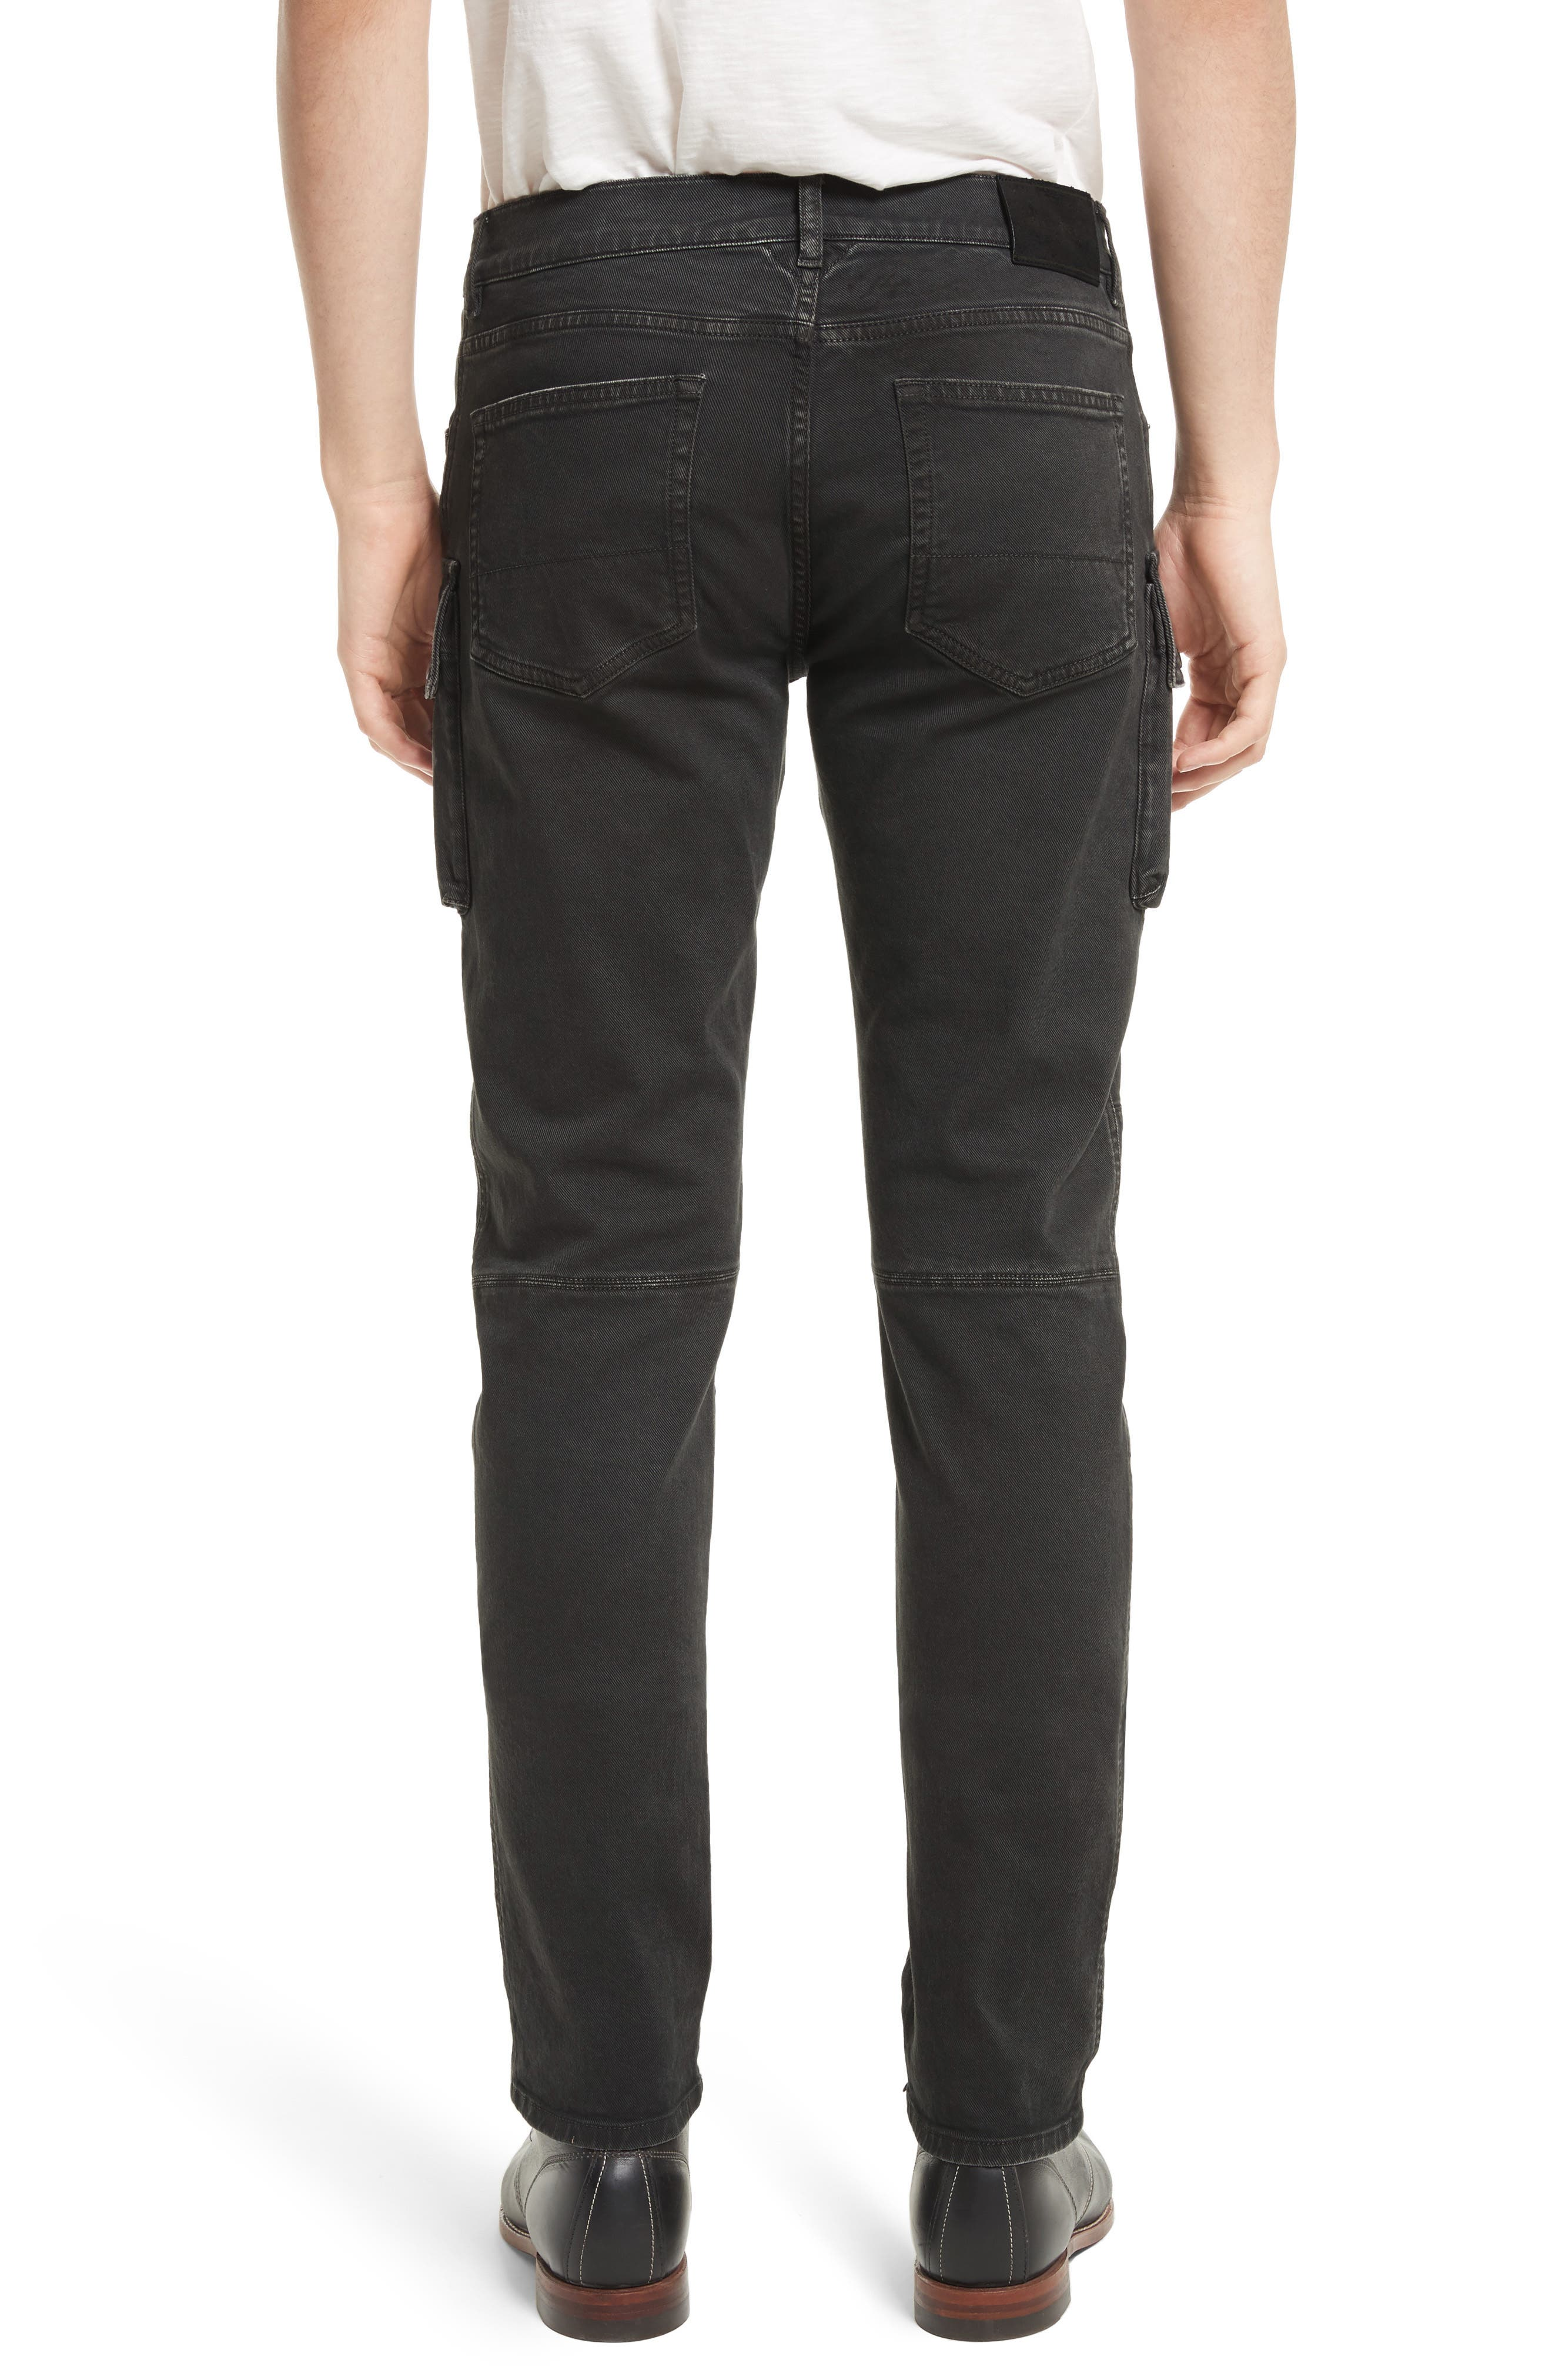 Westward Tapered Fit Cargo Jeans,                             Alternate thumbnail 2, color,                             001